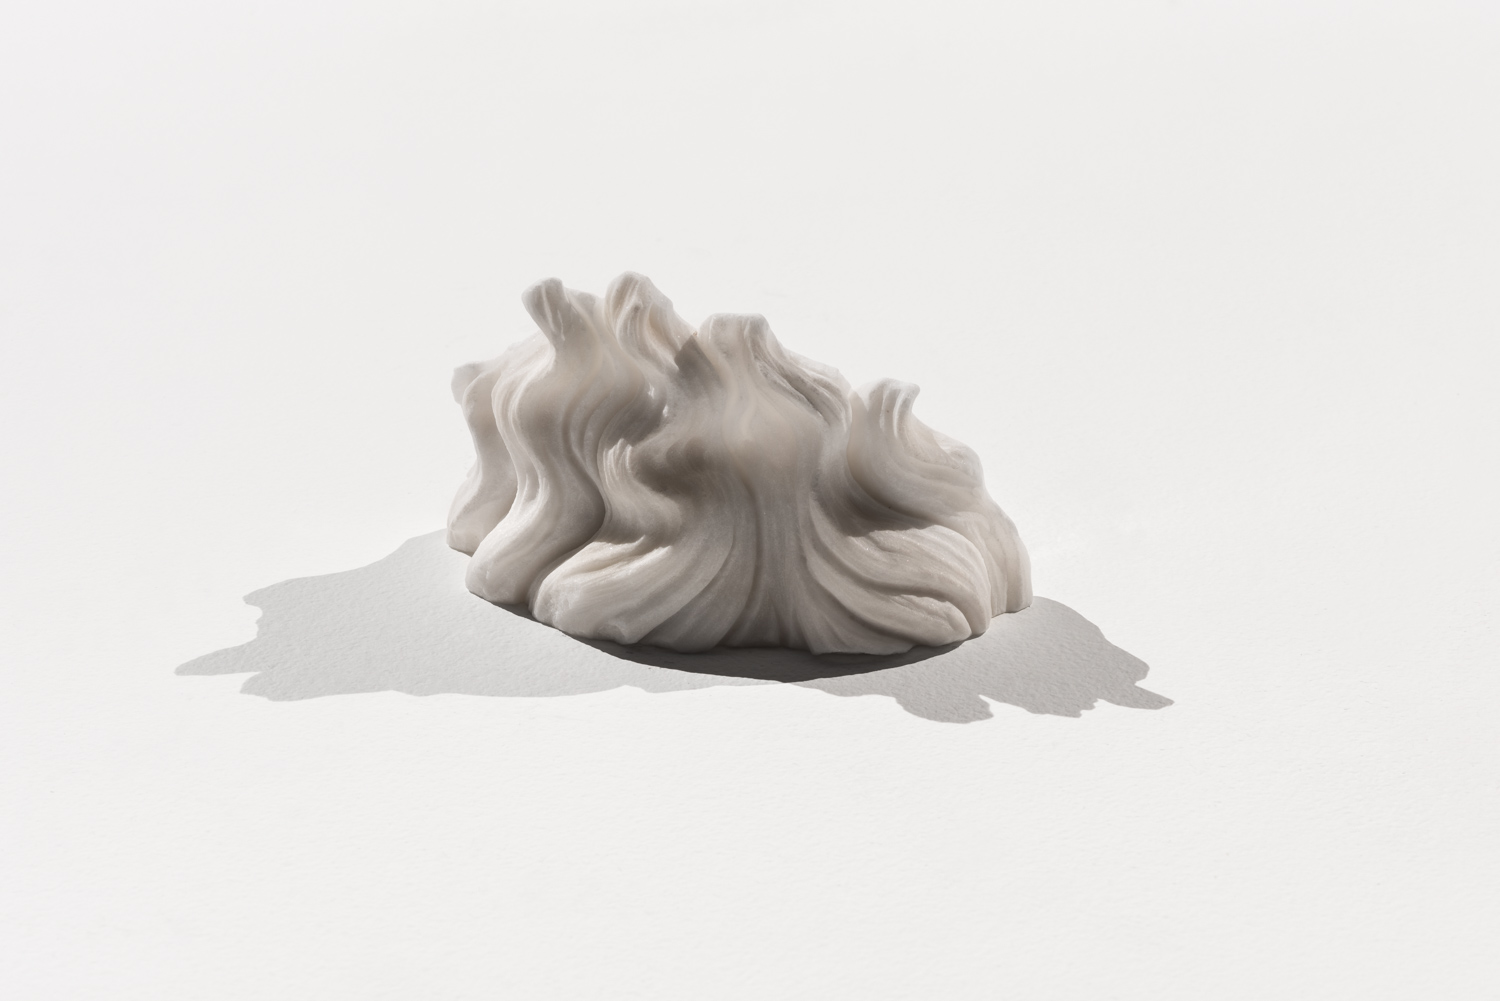 Beard of the effigy  2016 Imperial white marble 10 x 16 x 7 cm